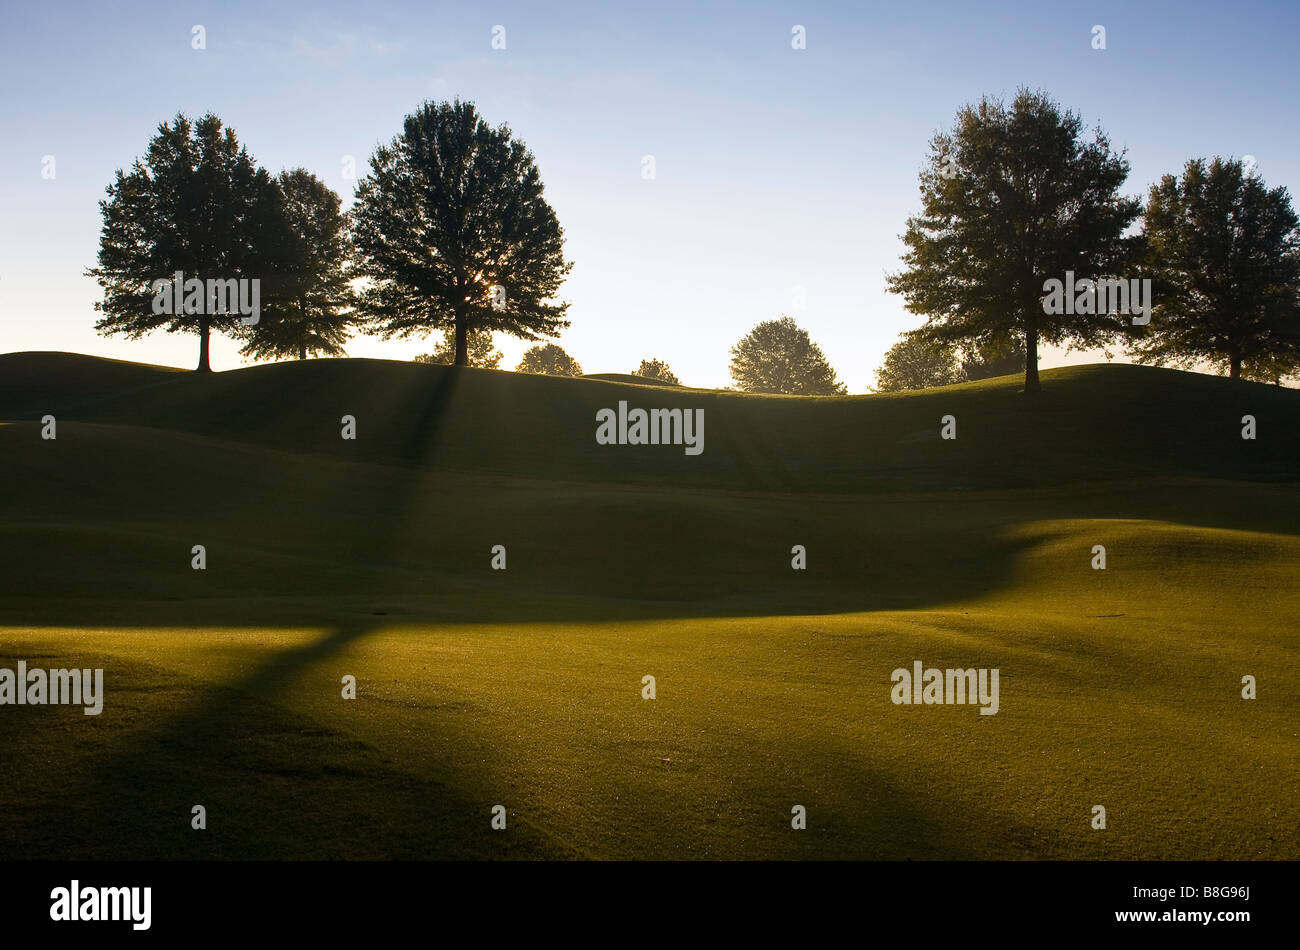 Sunrise Tree Silhouette in Franklin Tennessee USA - Stock Image